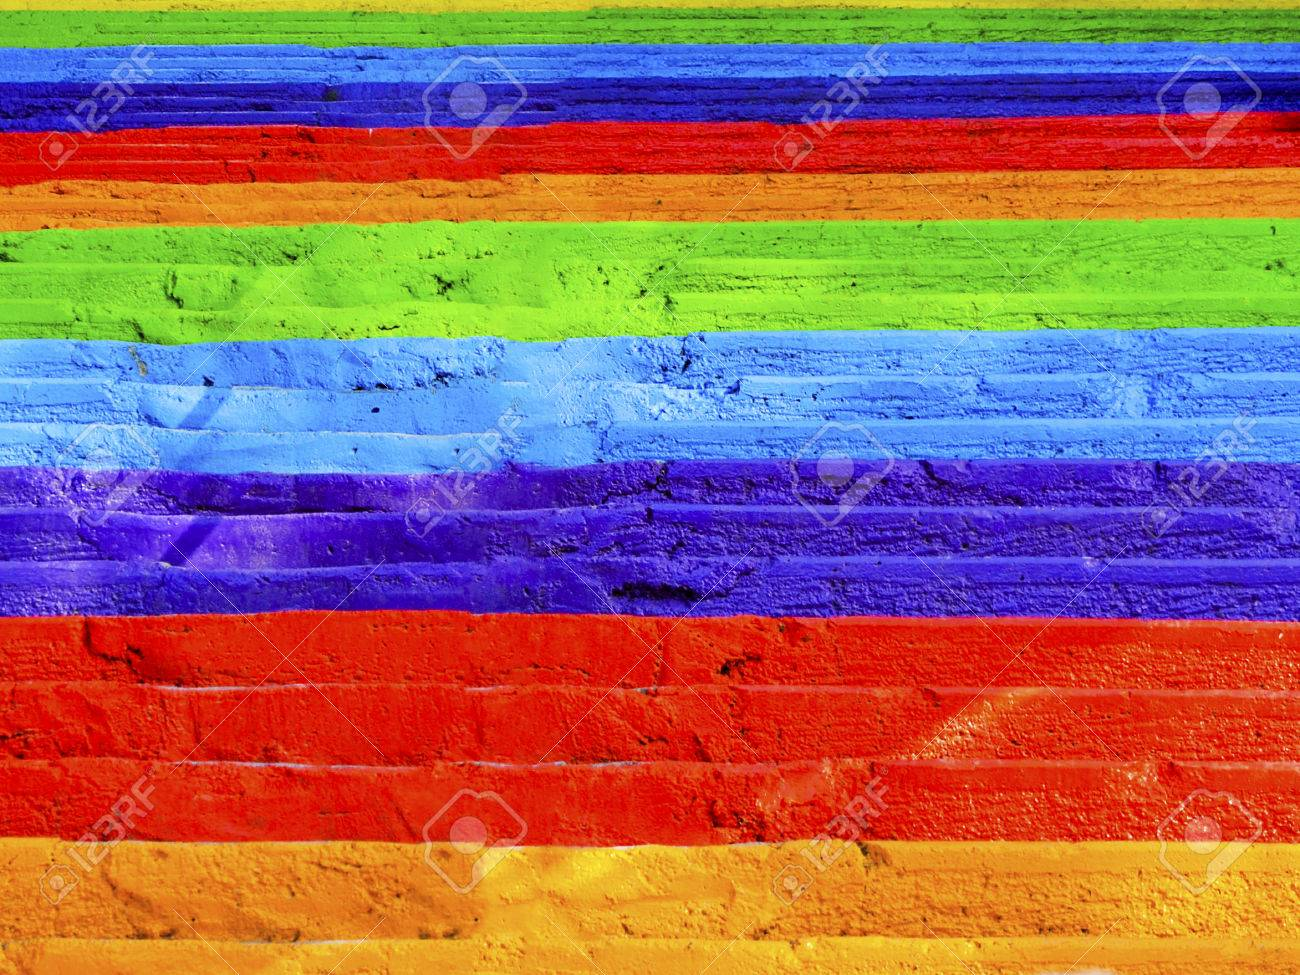 Steps rainbow painted street concrete stairs, background. - 70605688